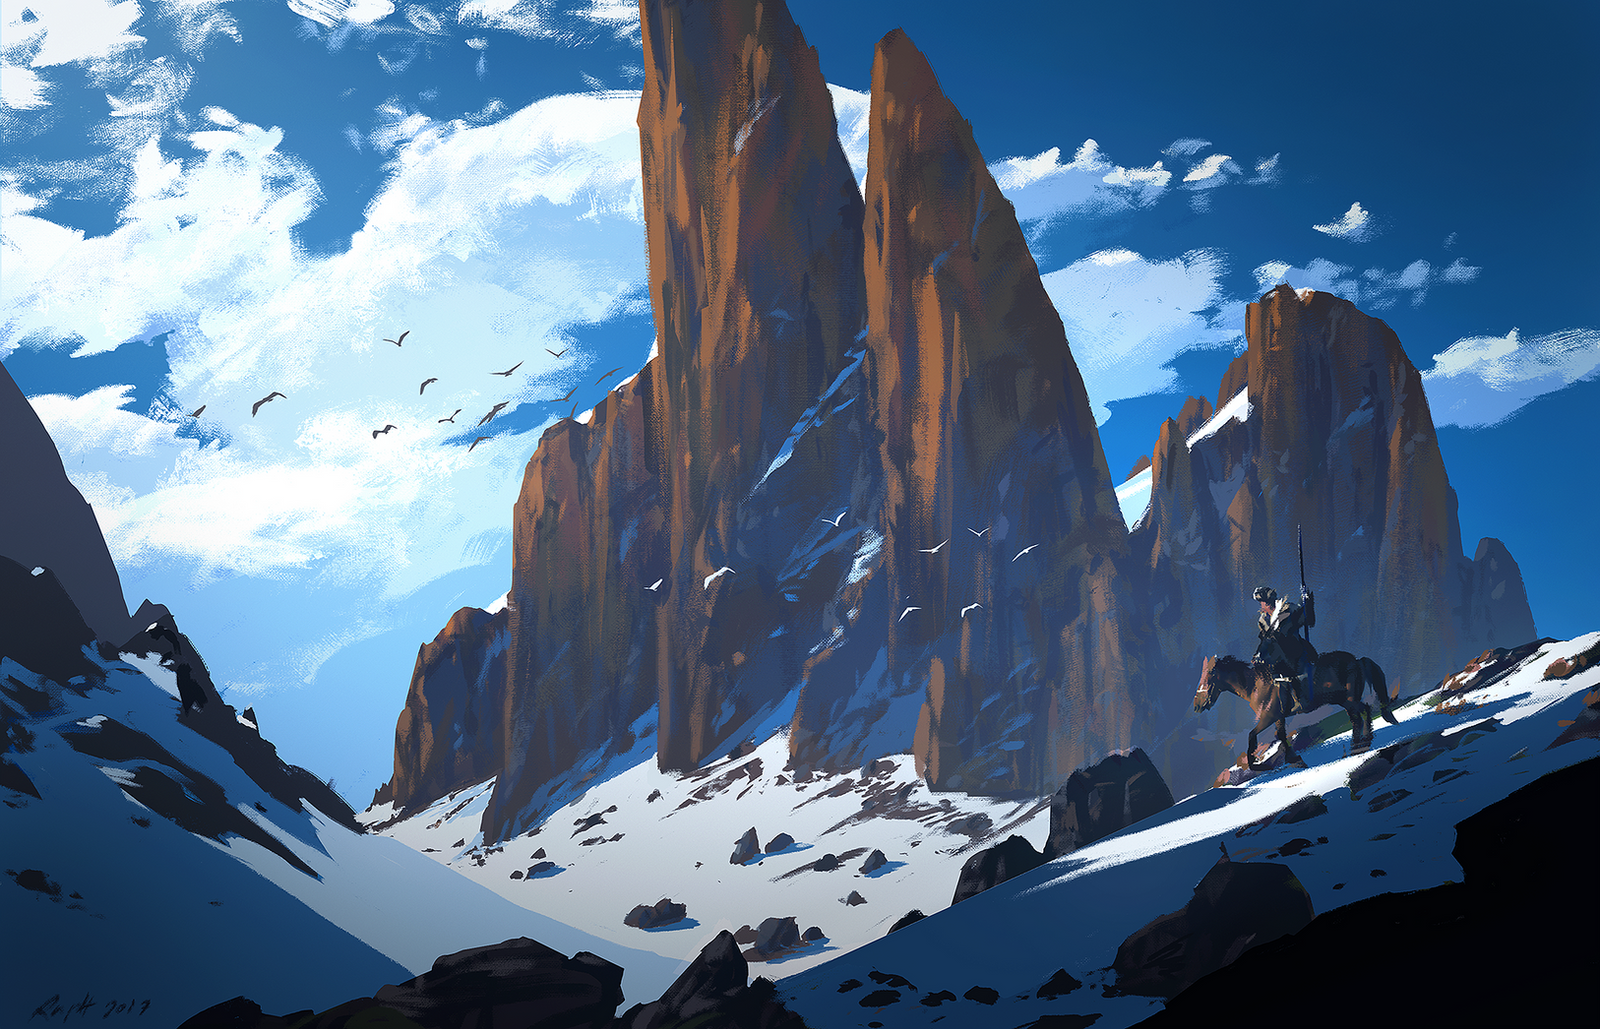 Mountain rider by Raphael-Lacoste